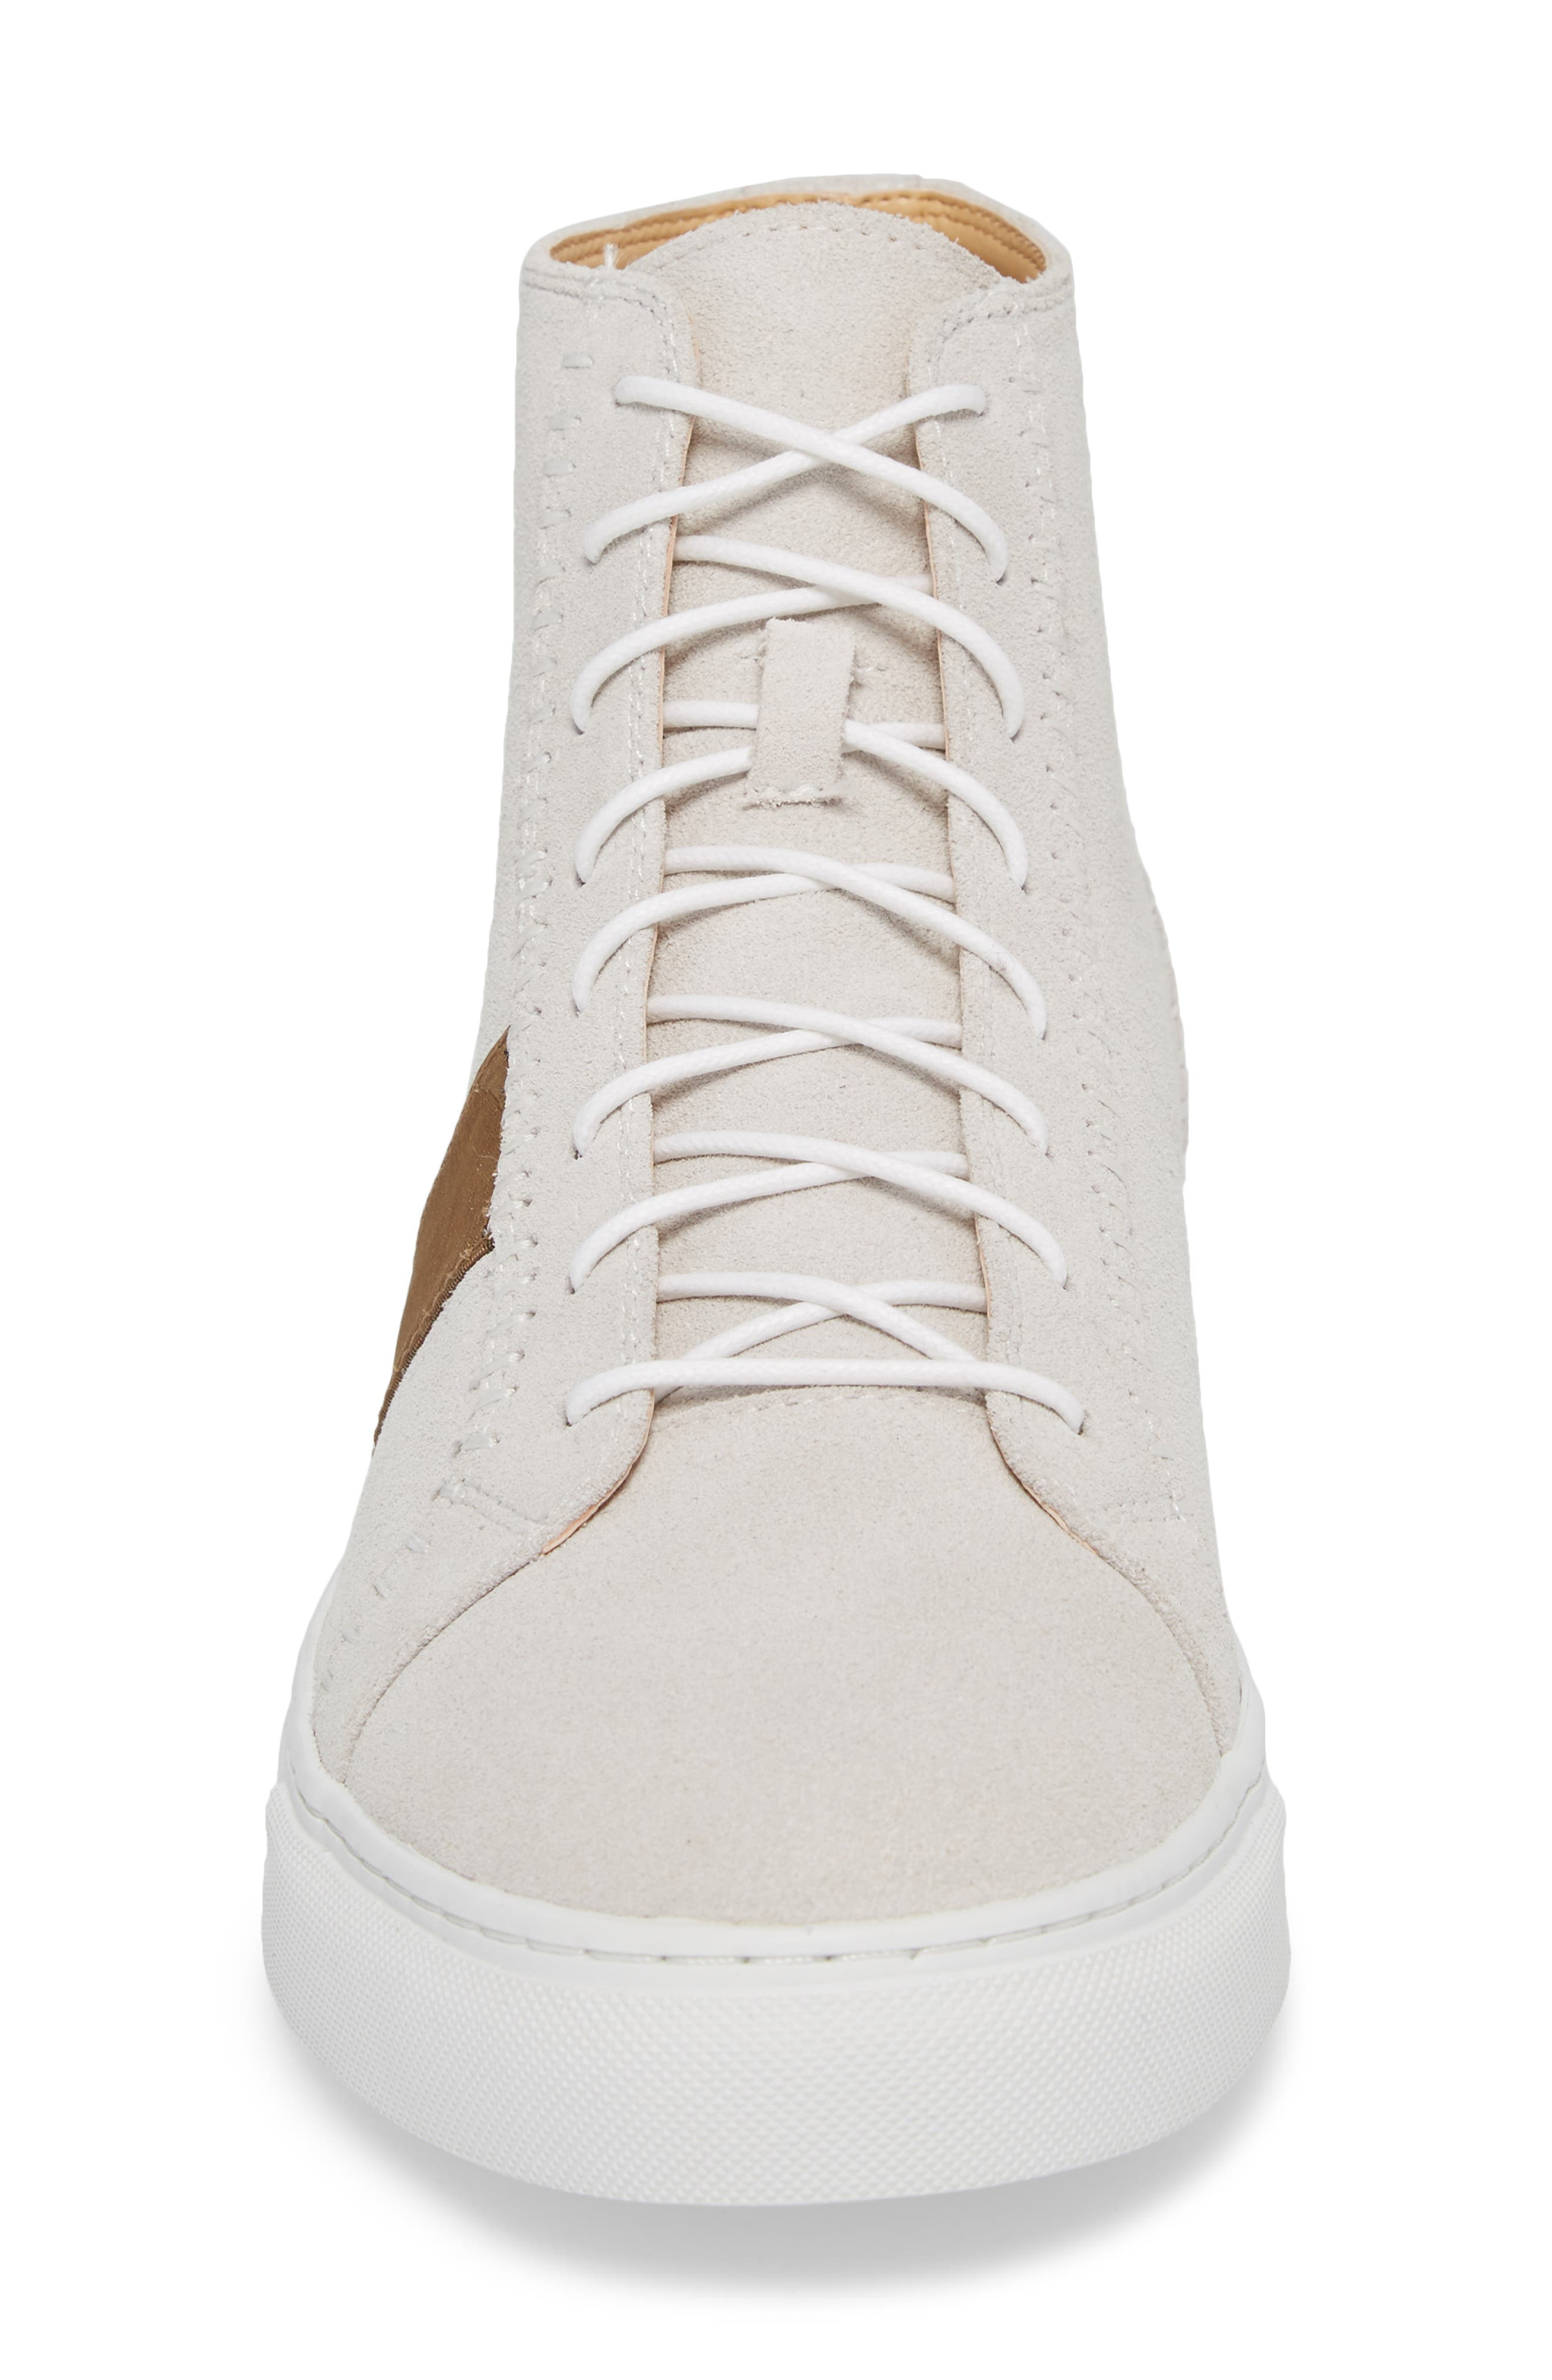 High Top Sneaker,                             Alternate thumbnail 4, color,                             White Suede